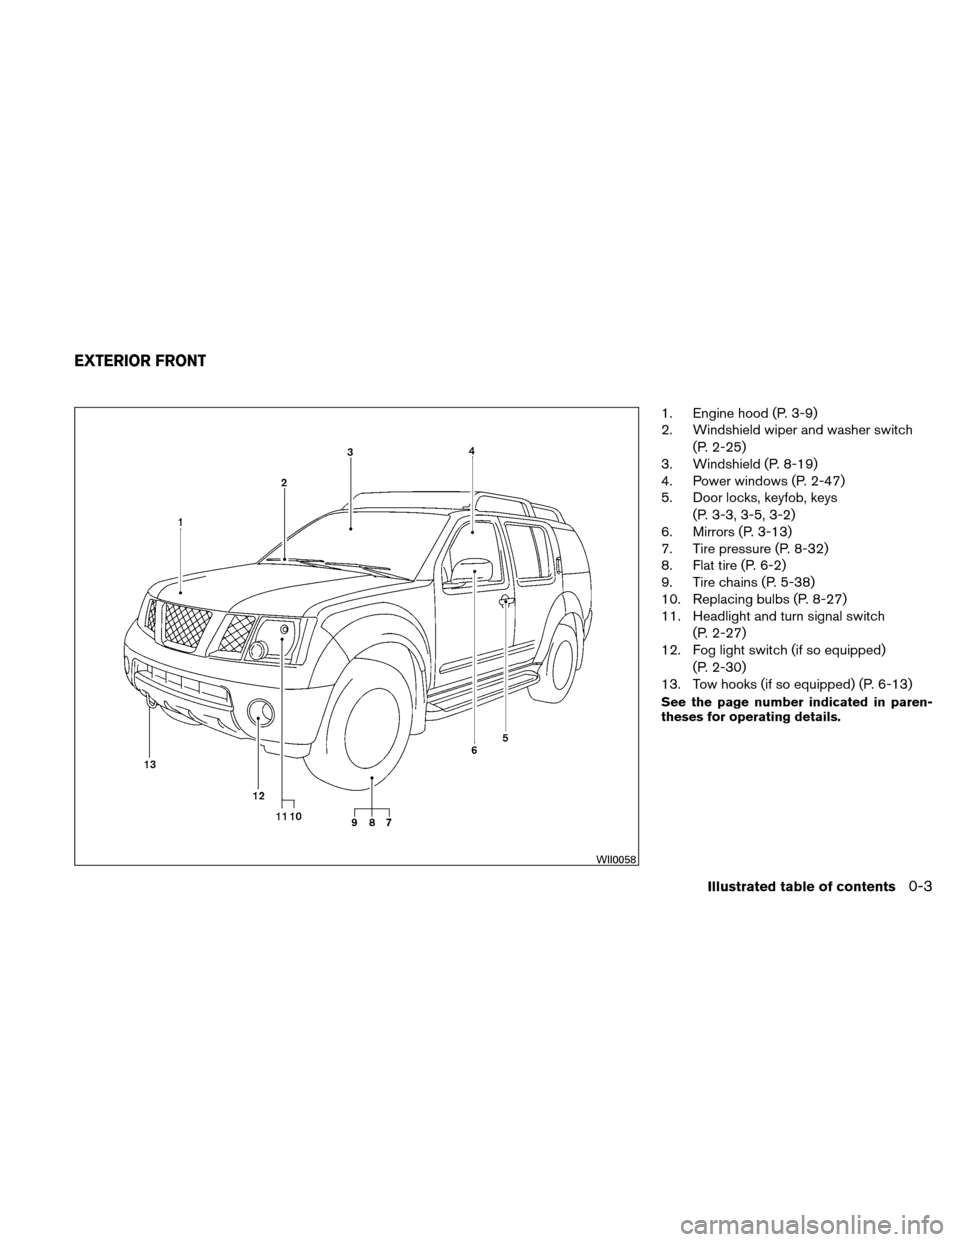 NISSAN XTERRA 2011 N50 / 2.G Owners Manual, Page 10